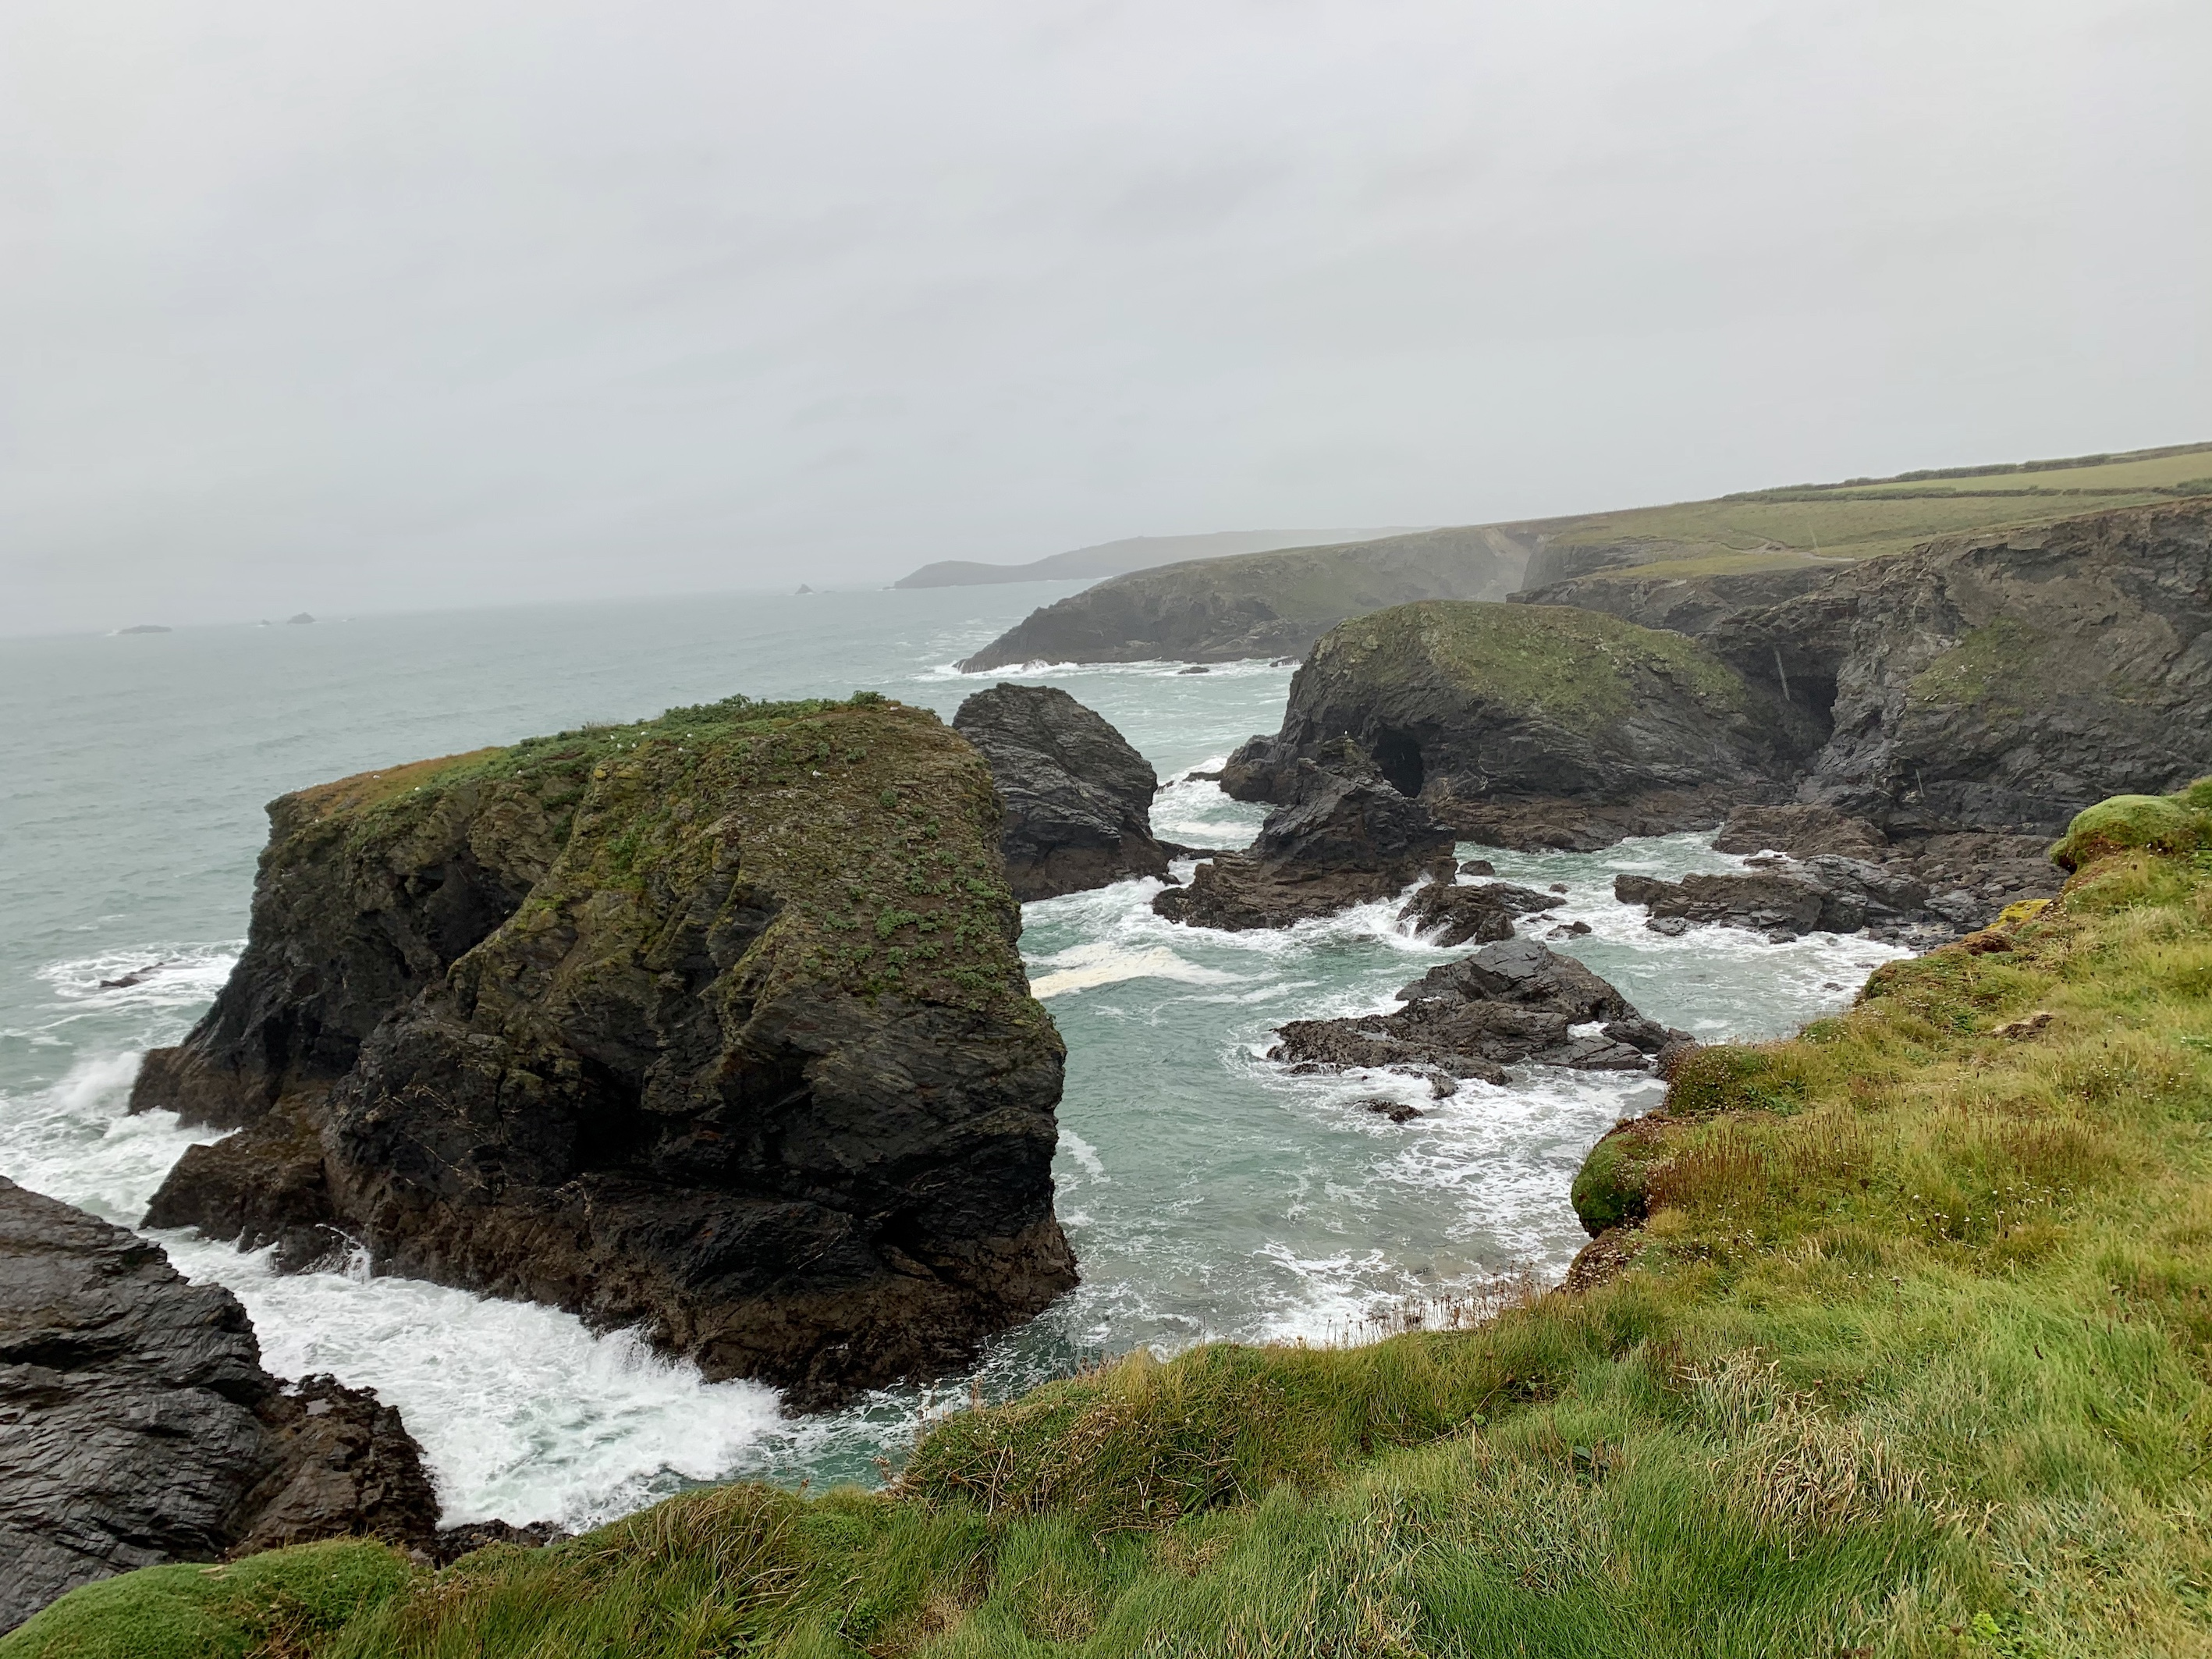 Superb views - even in grey weather along The South West Coast Path from Padstow to Porthcothan